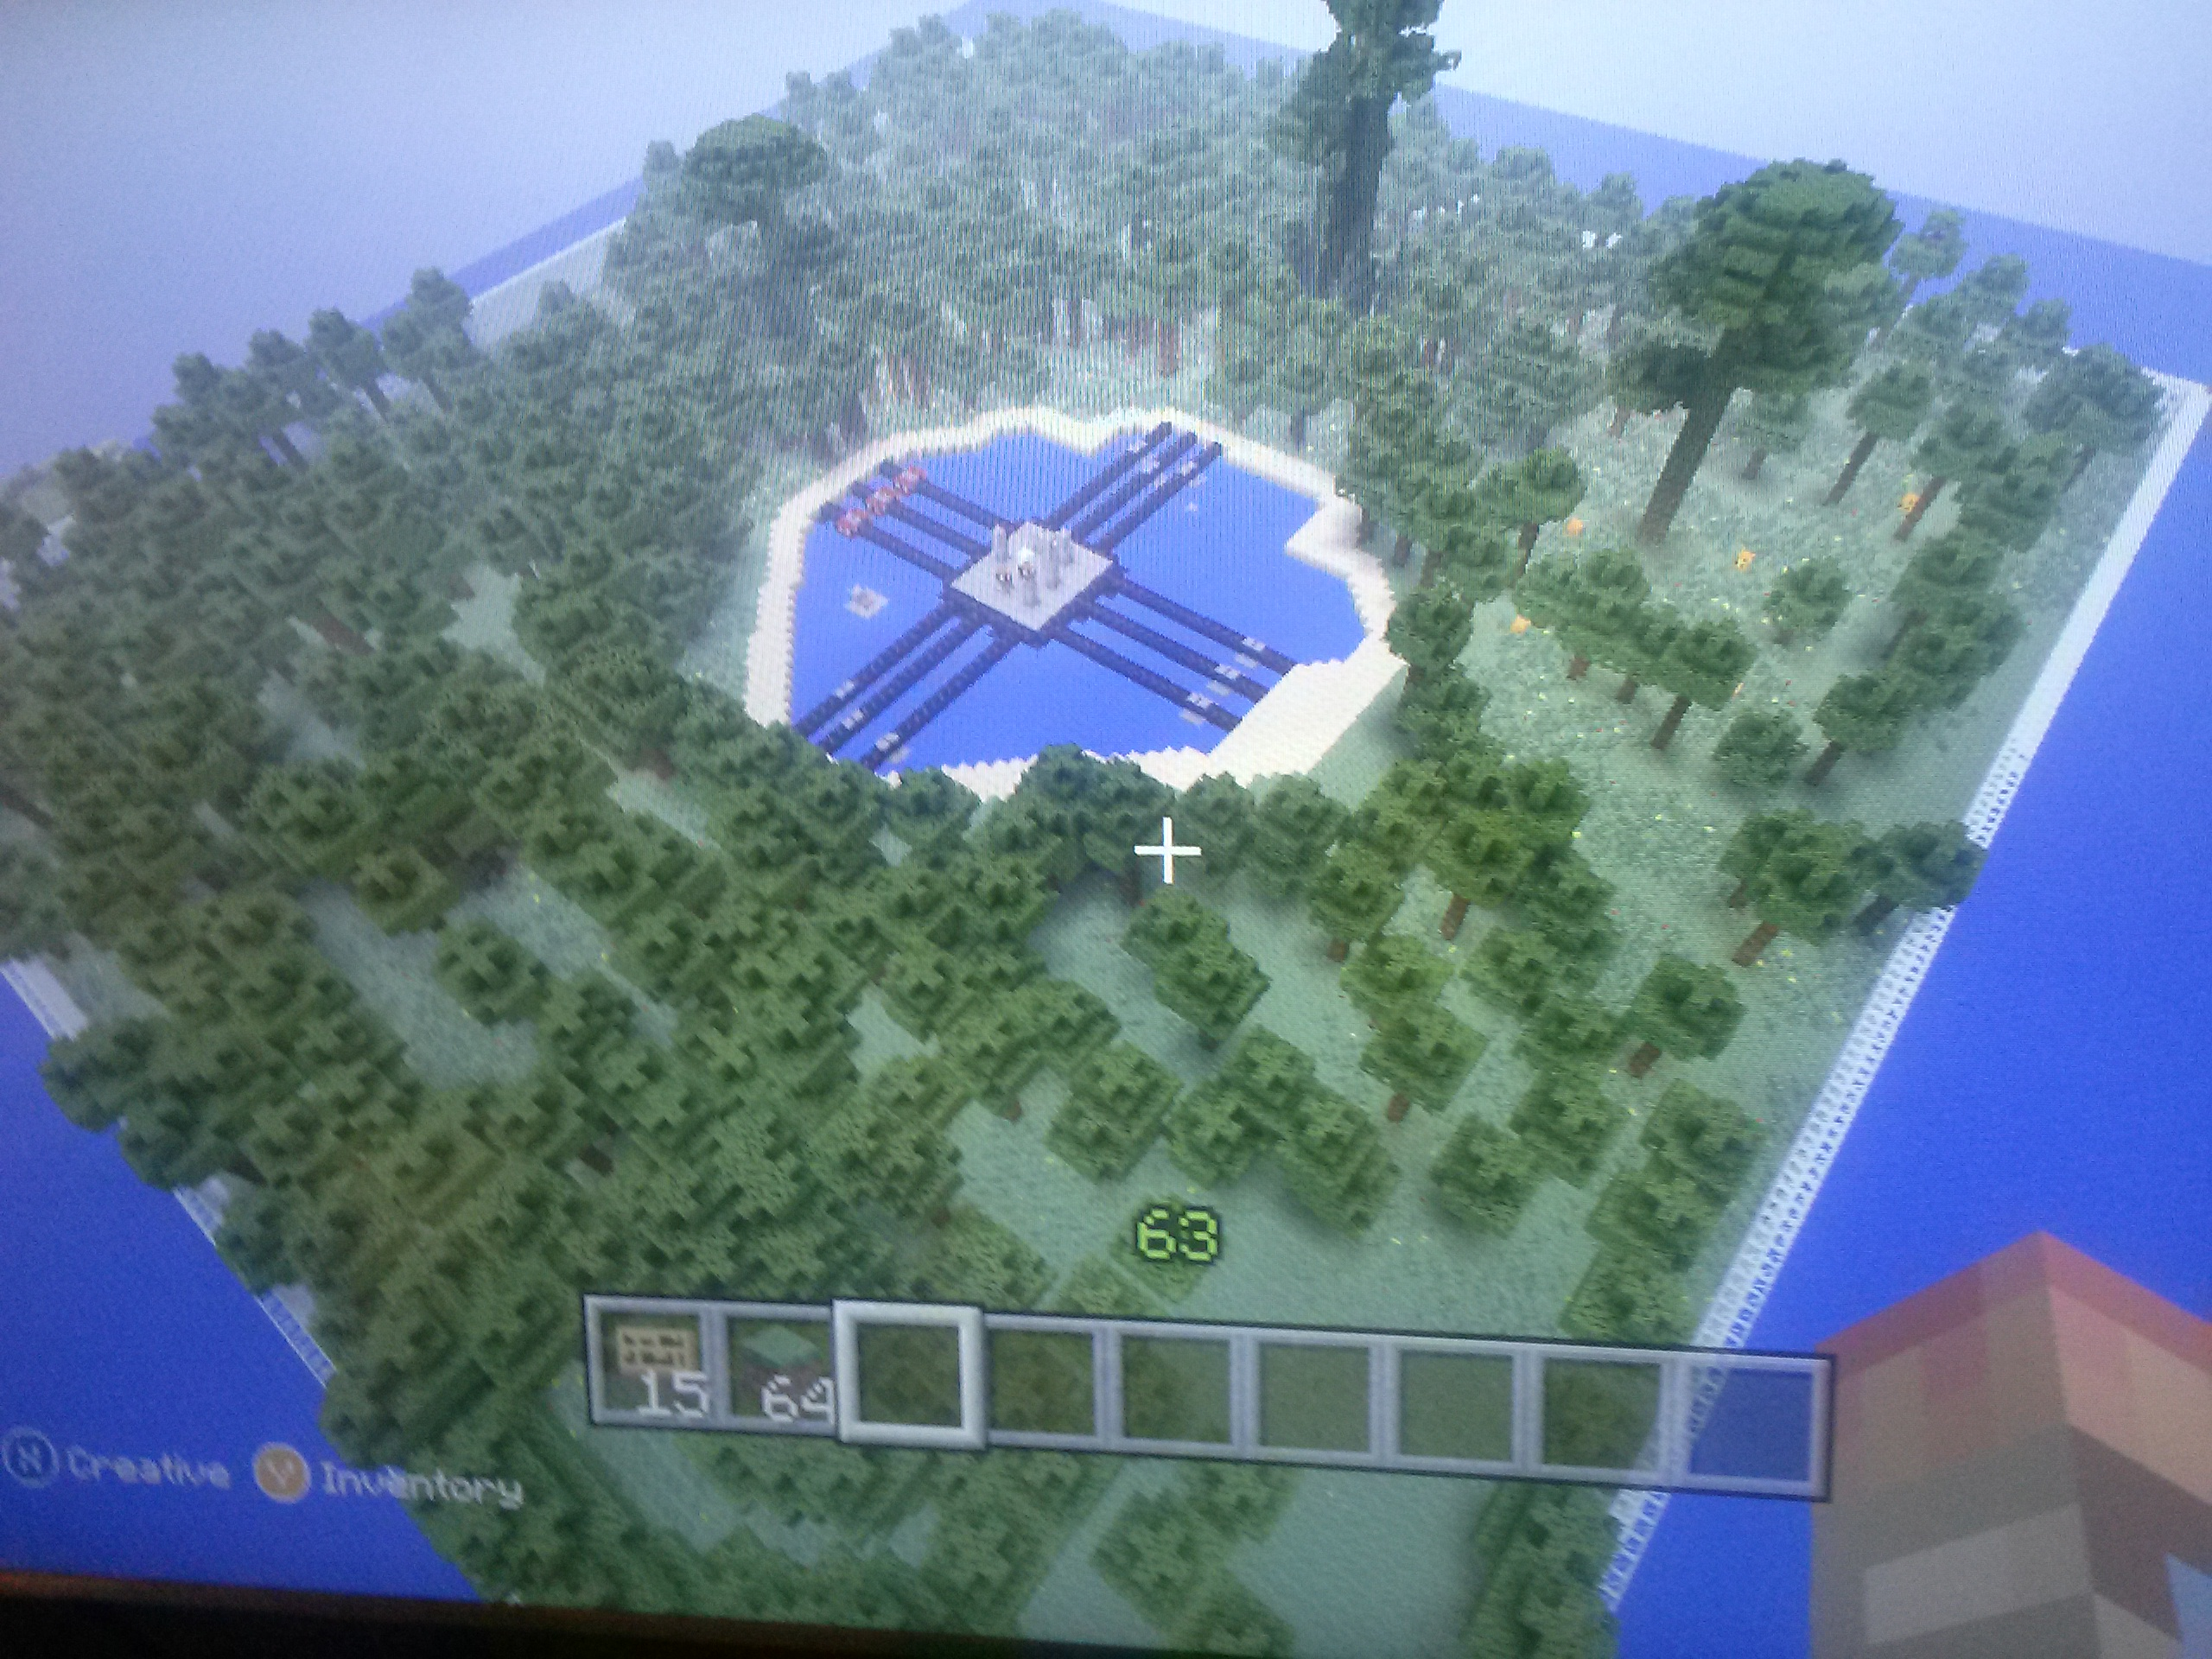 Hunger games catching fire map - MCX360: Servers - MCX360 ...